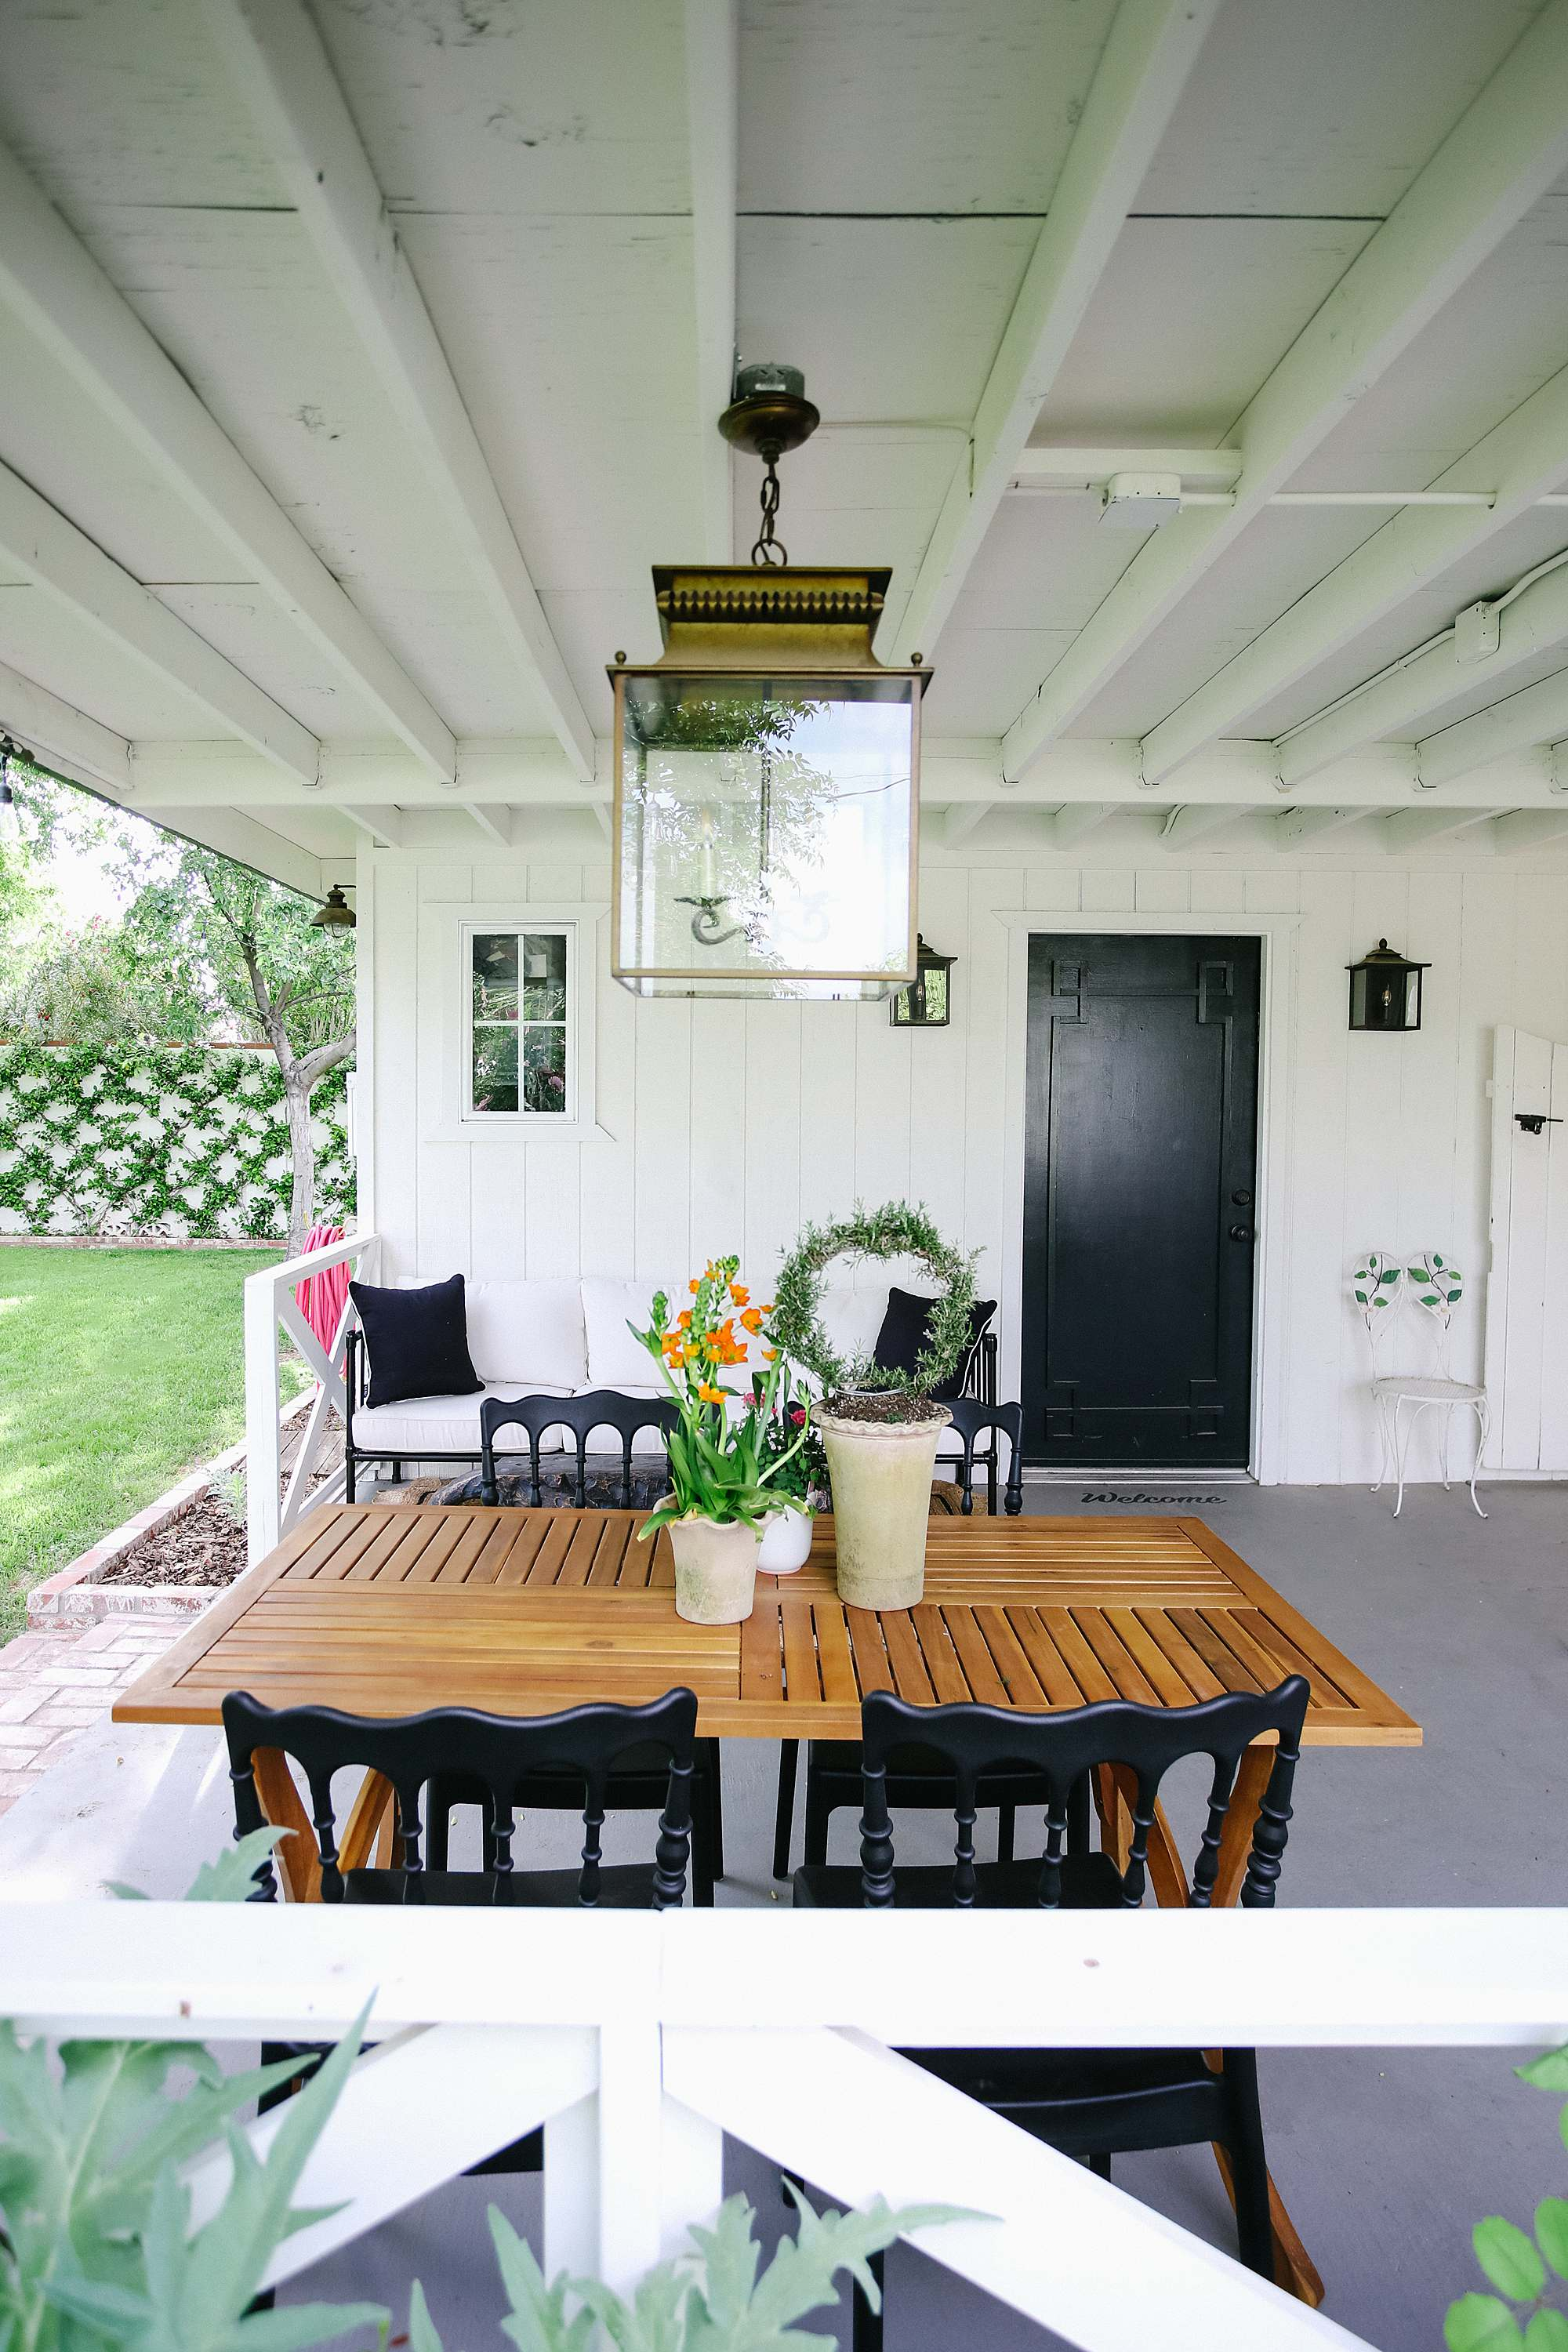 Grandmillennial style porch inspiration contemporary English garden white and black romantic feminine backyard porch vibe